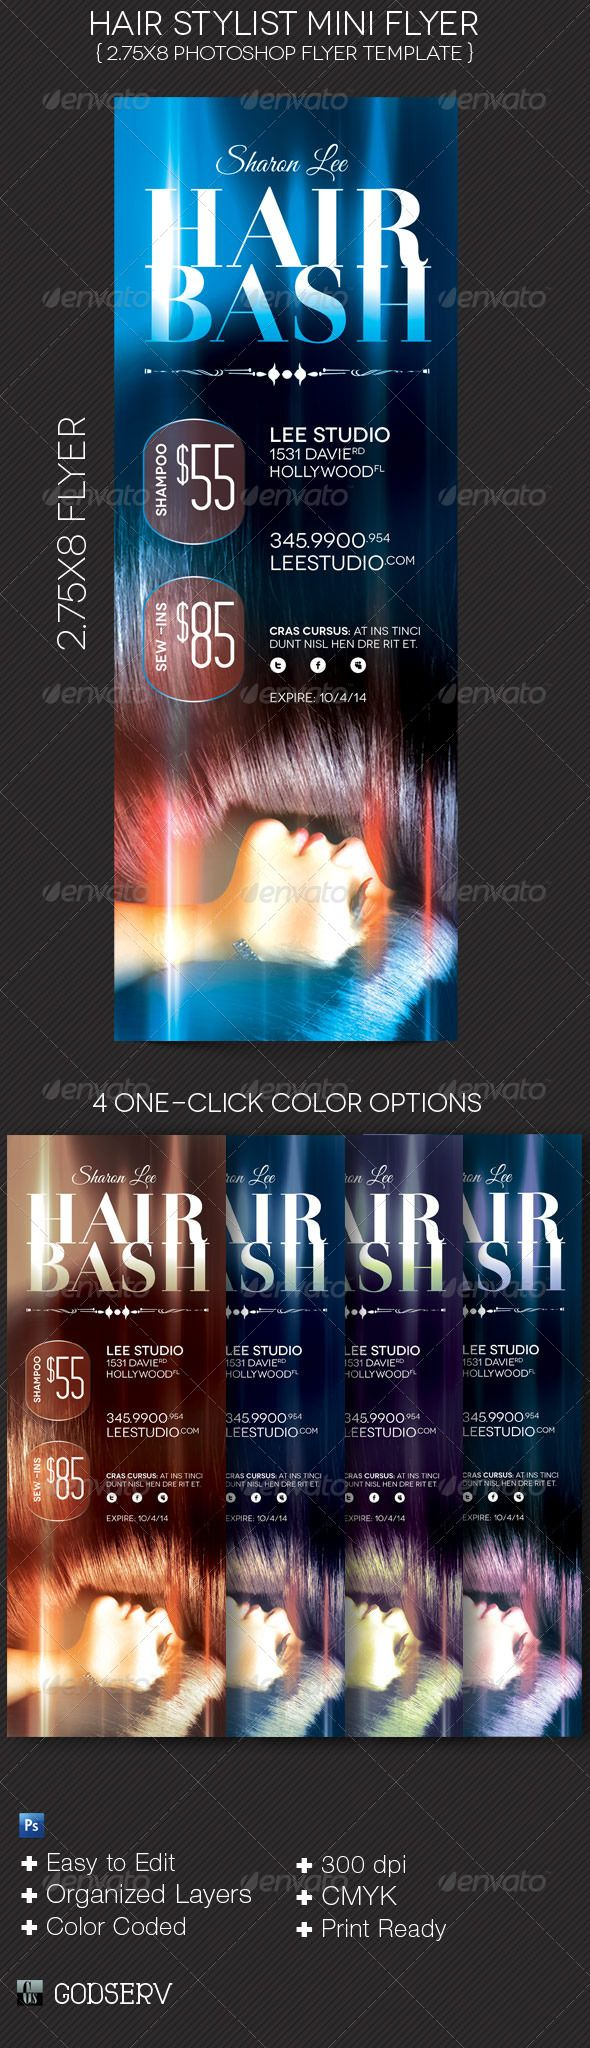 17 Best Images About Salon On Pinterest Beauty Spa Business Card Templates And Hair Salons